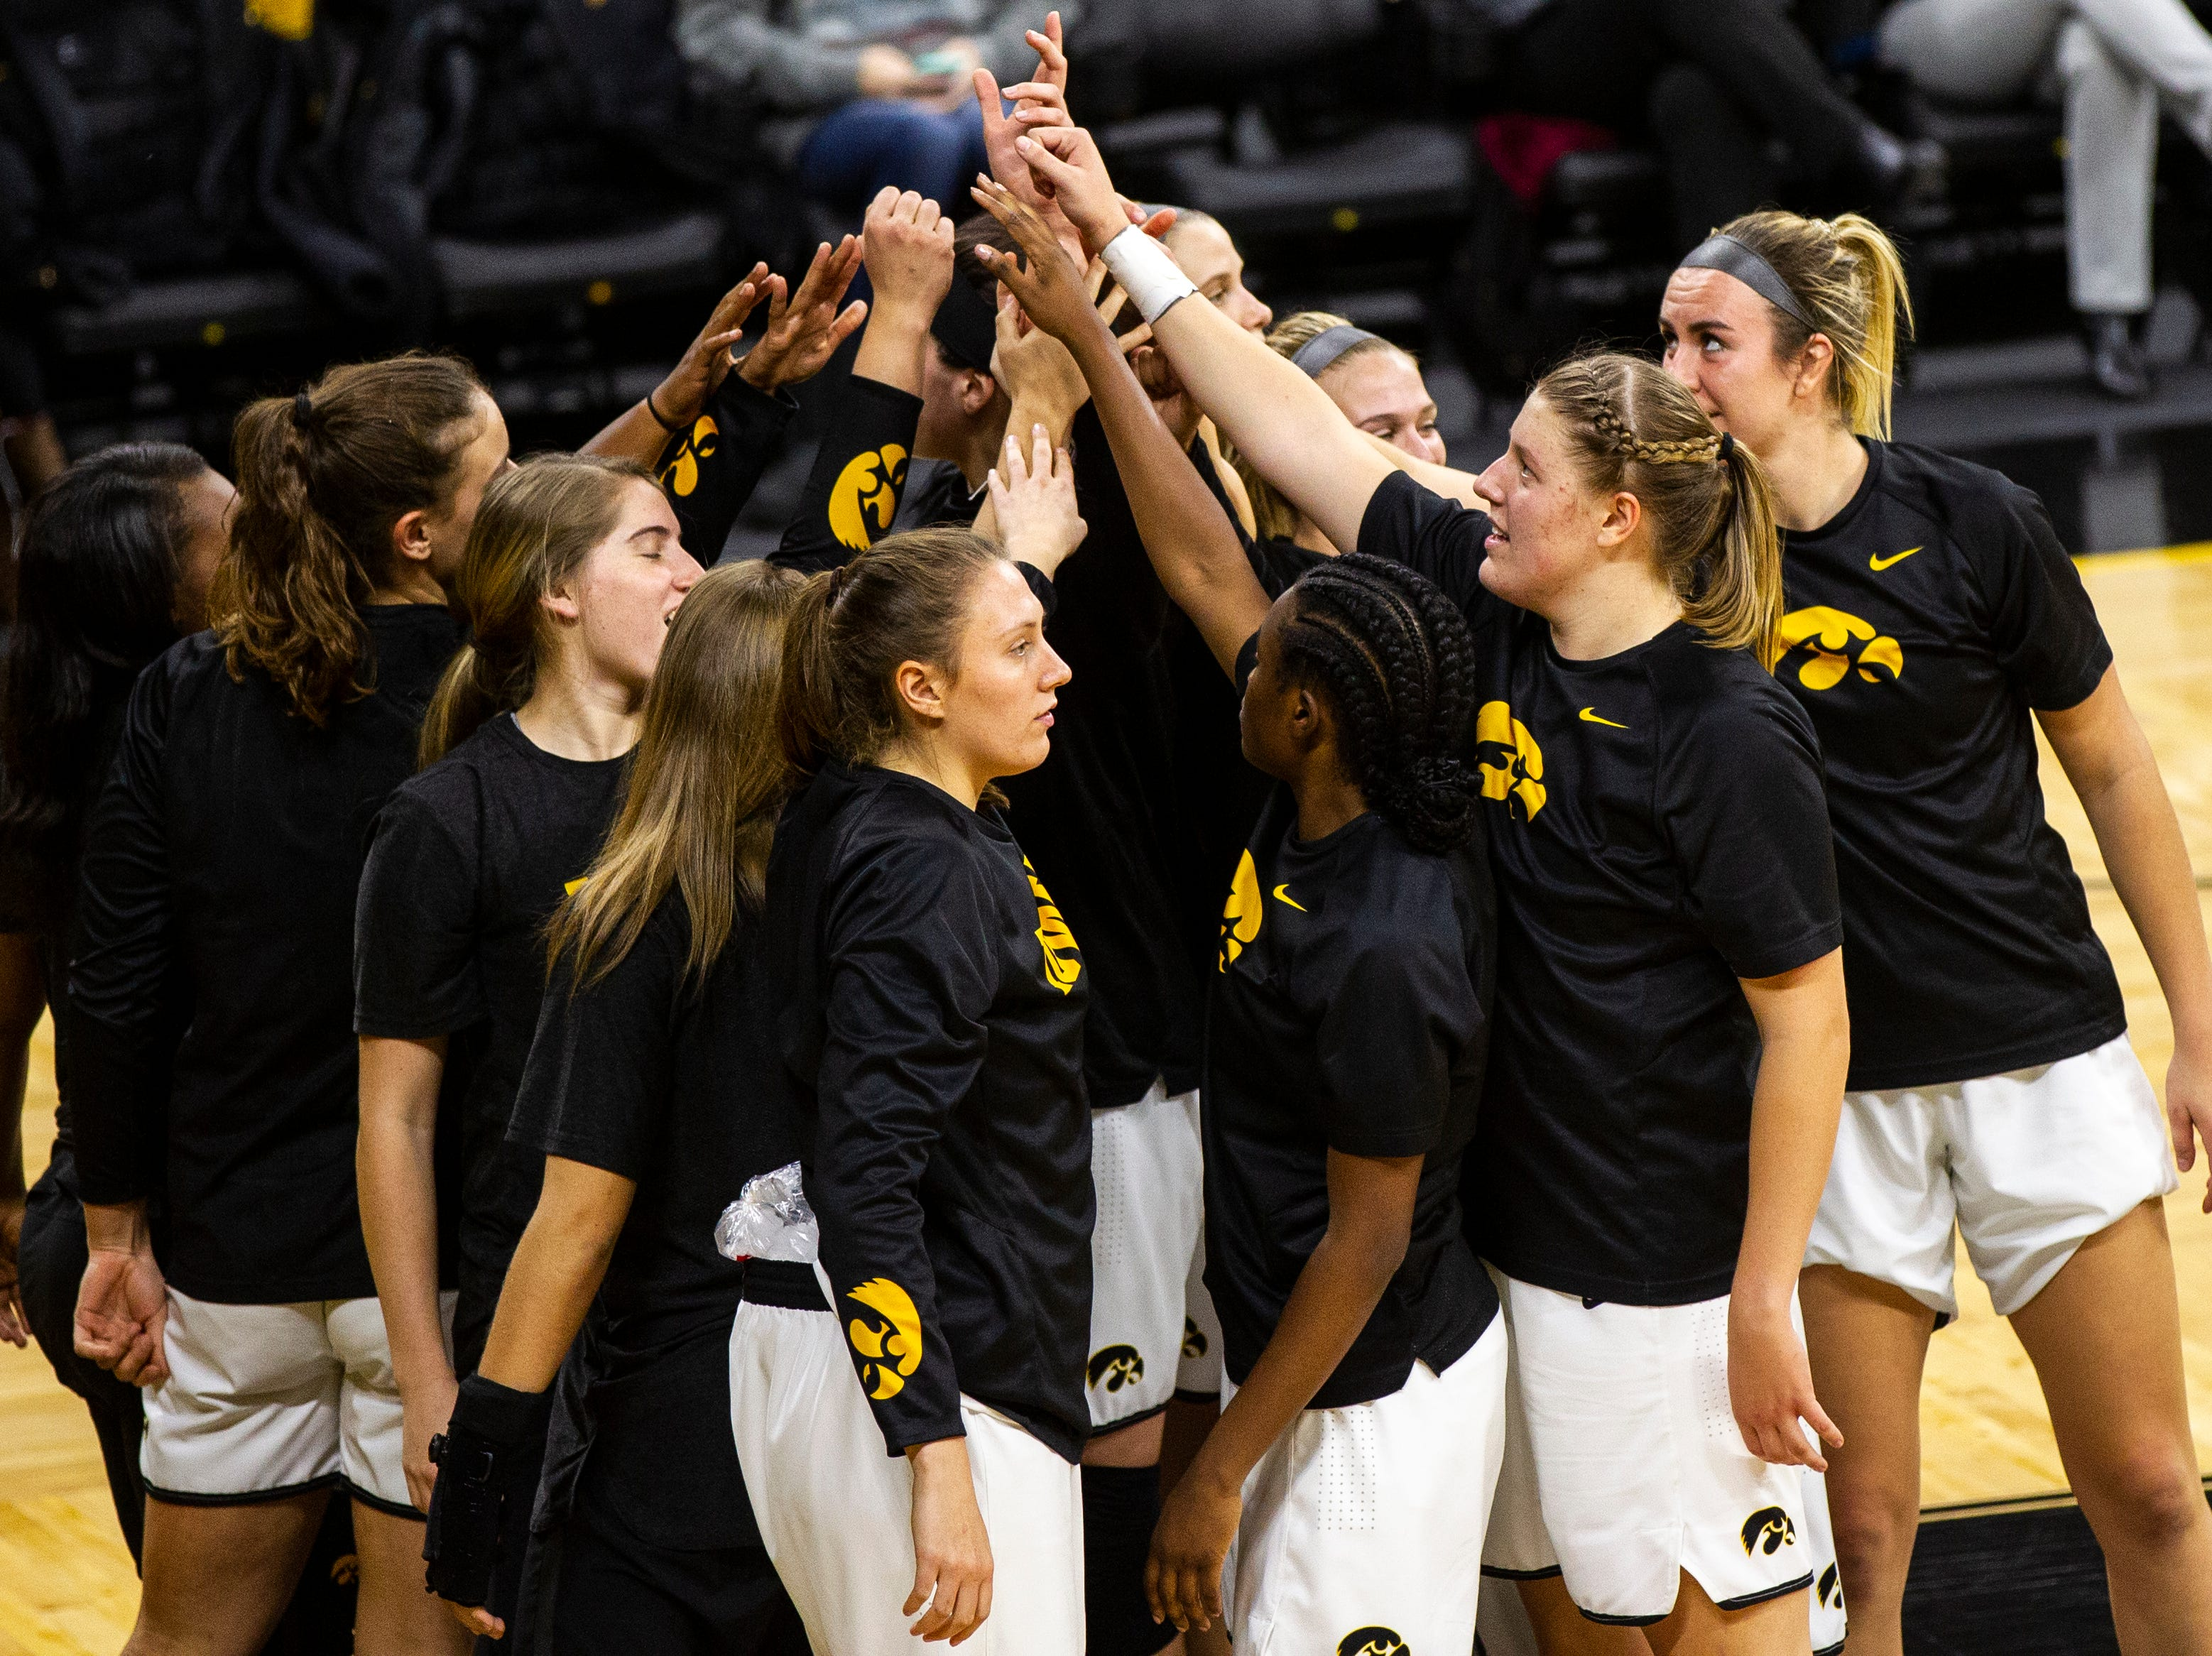 Iowa Hawkeyes players huddle up during a women's basketball exhibition basketball game on Tuesday, Nov. 6, 2018, at Carver-Hawkeye Arena in Iowa City.